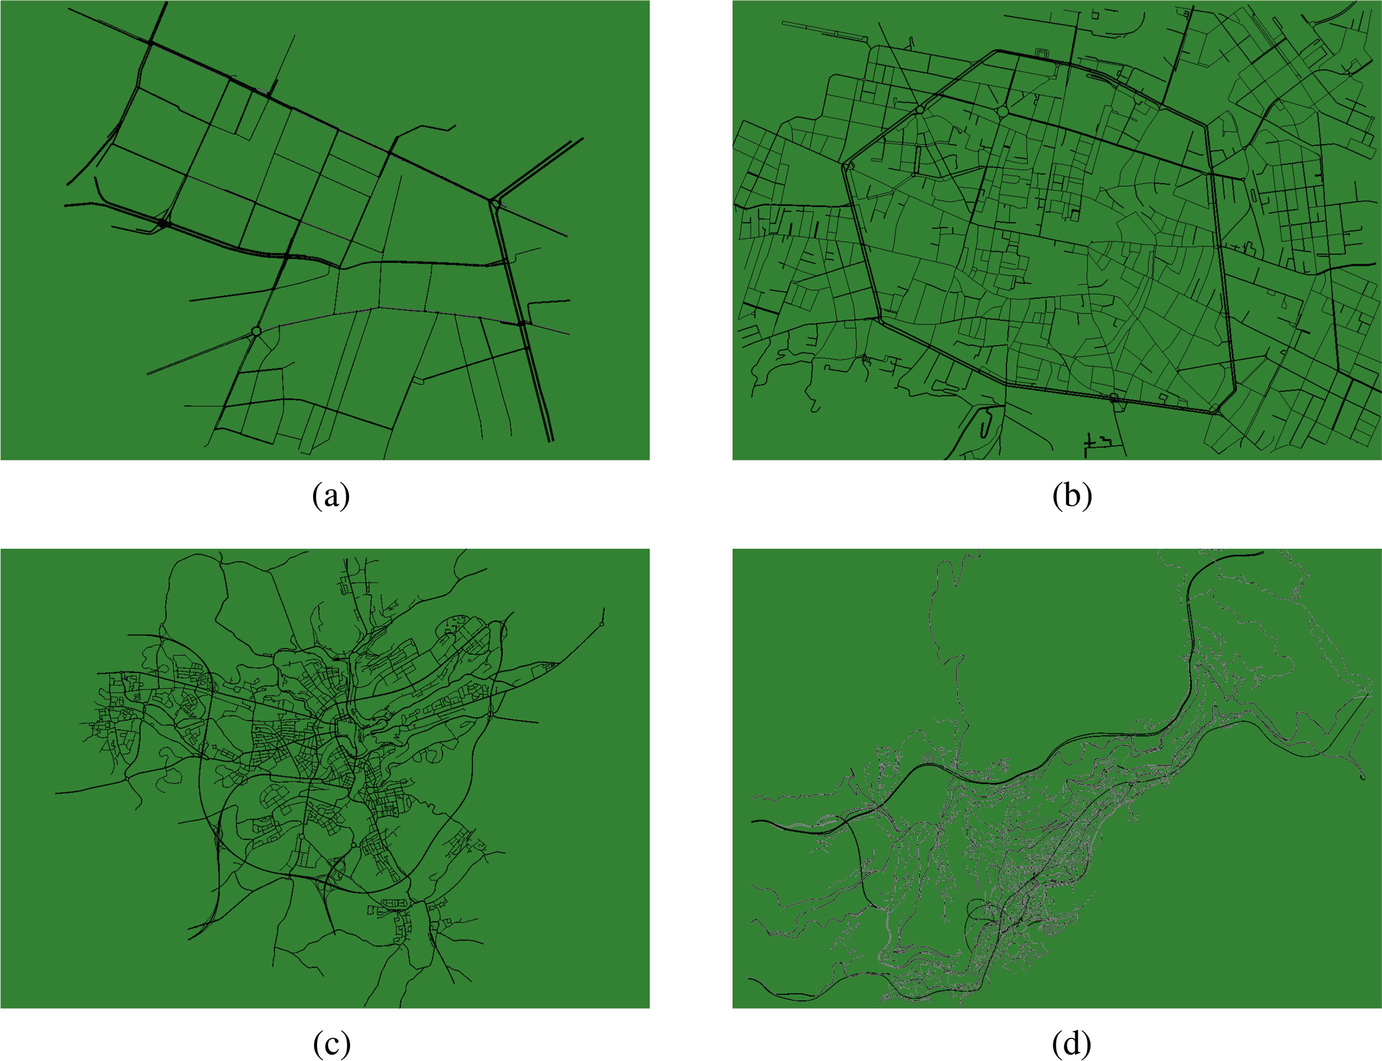 Veins: The Open Source Vehicular Network Simulation